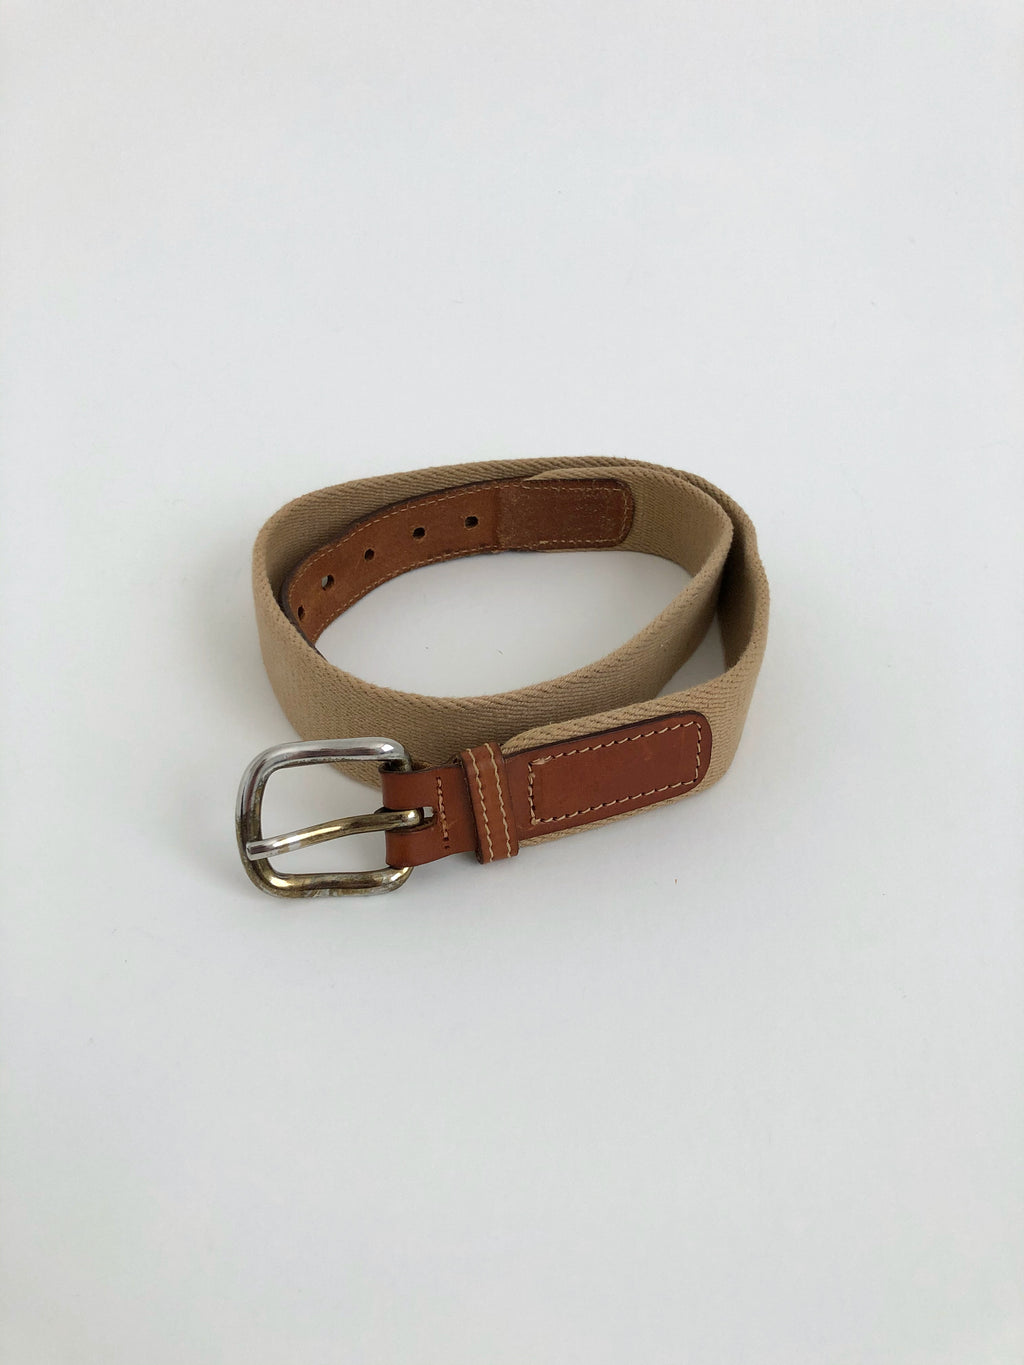 Vintage Brown Cotton and Leather Belt by The Gap